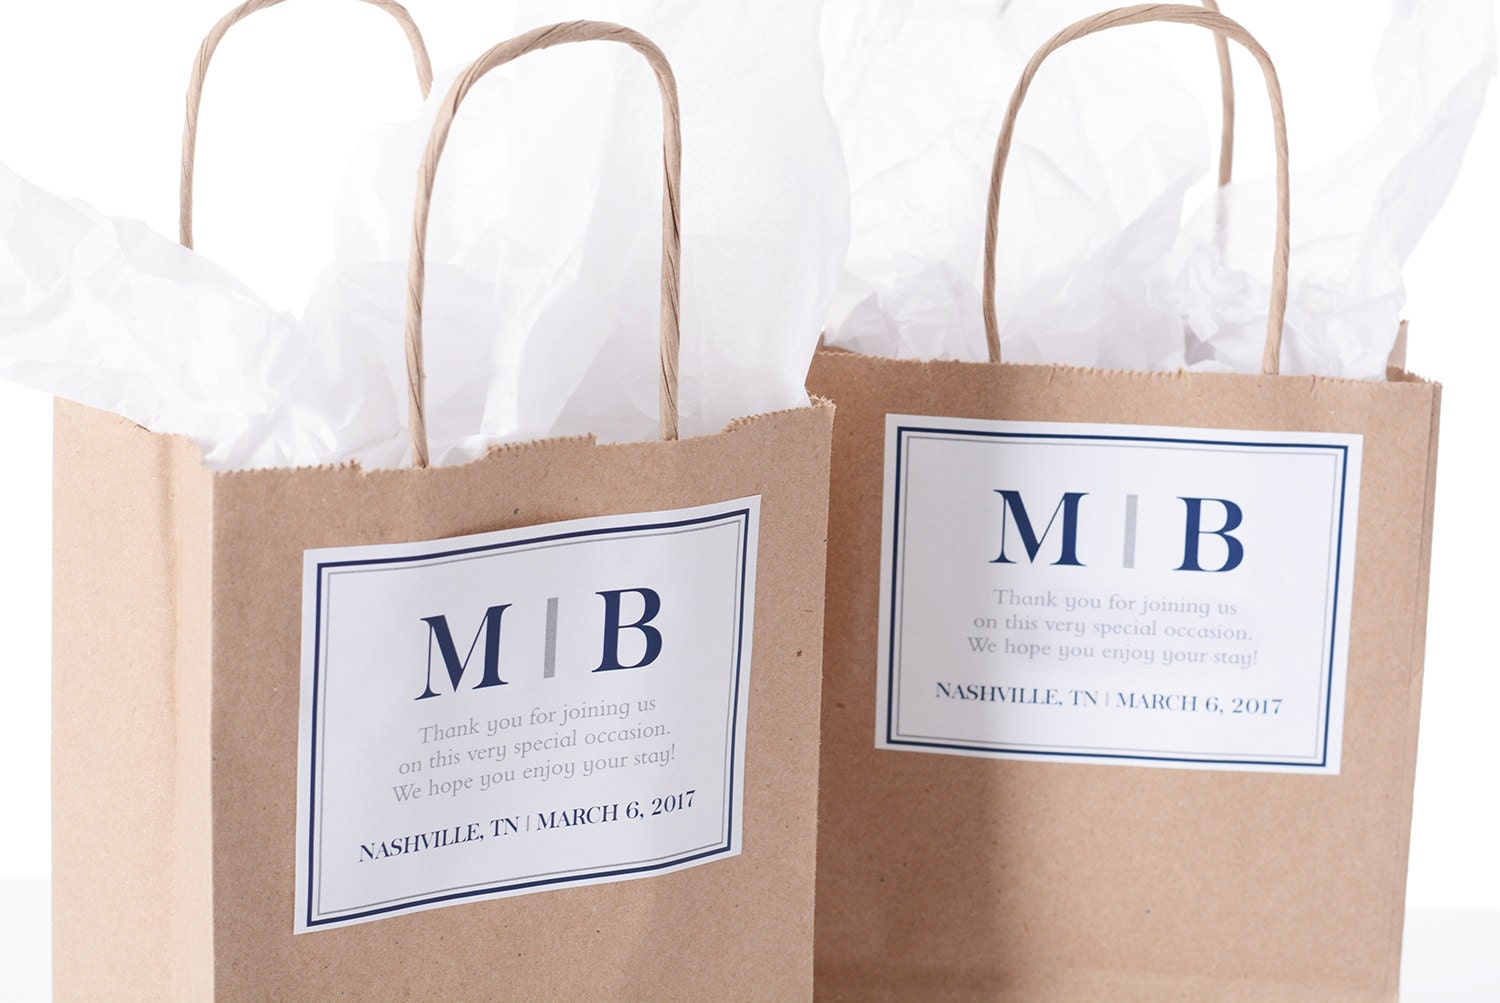 Hotel Wedding Guest Gift Bags: Hotel Wedding Welcome Bags 25 Out Of Town Welcome Bags